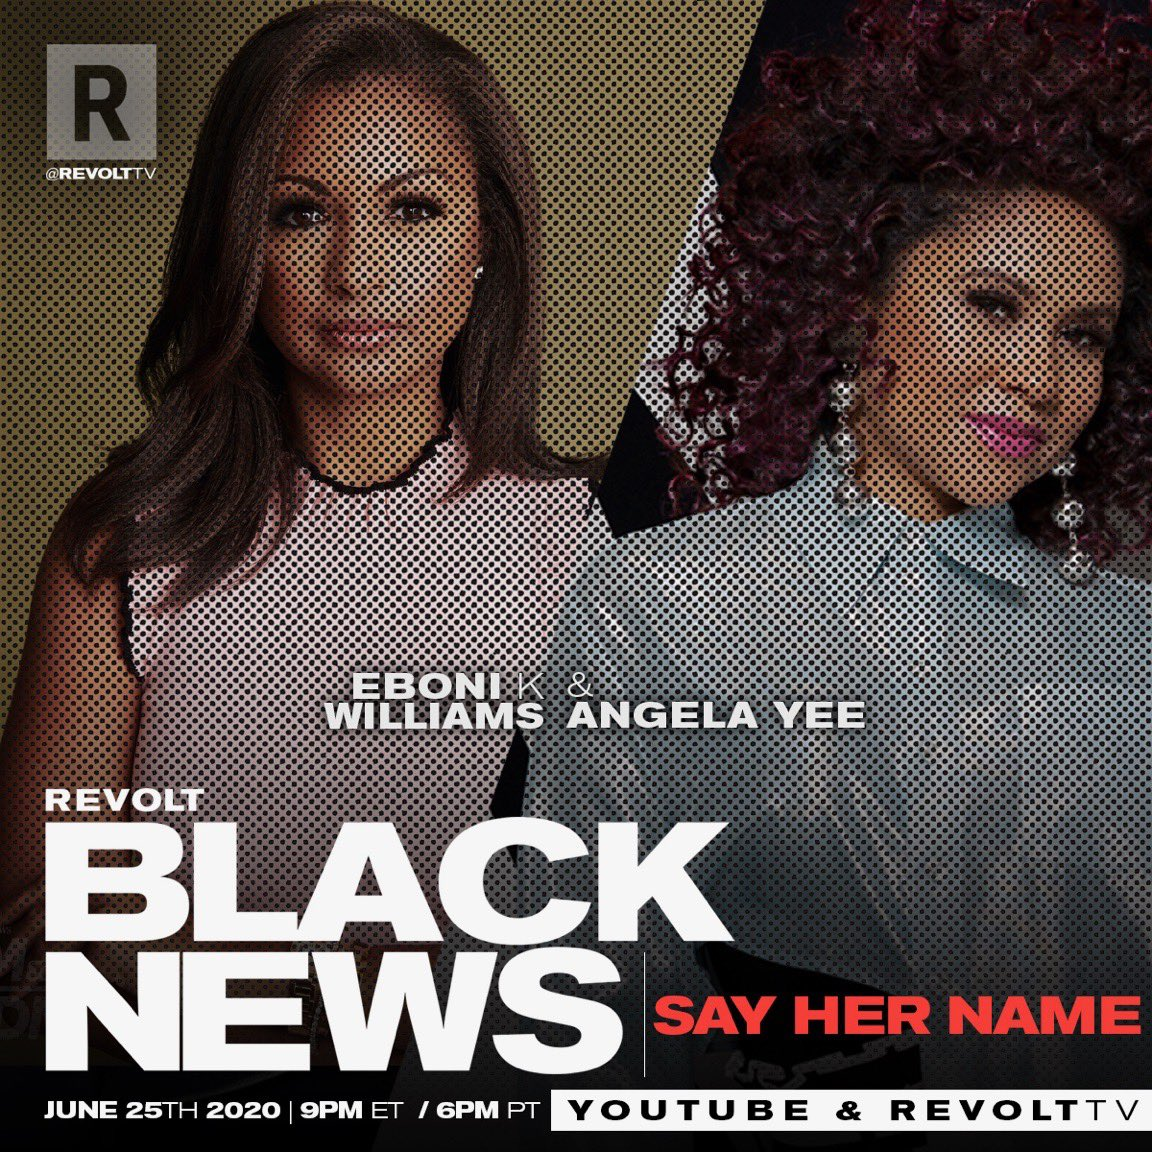 Say HER Name!  #REVOLTBLACKNEWS is going IN on respecting & protecting Black Women.  @AngelaYee, @RepKarenBass, @MsPackyetti, and more join to discuss legislation that changes the game for Black Women, Russell Simmons & his many accusers, and much more!! @revolttv @youtube @diddy https://t.co/zR3bJIpJsL